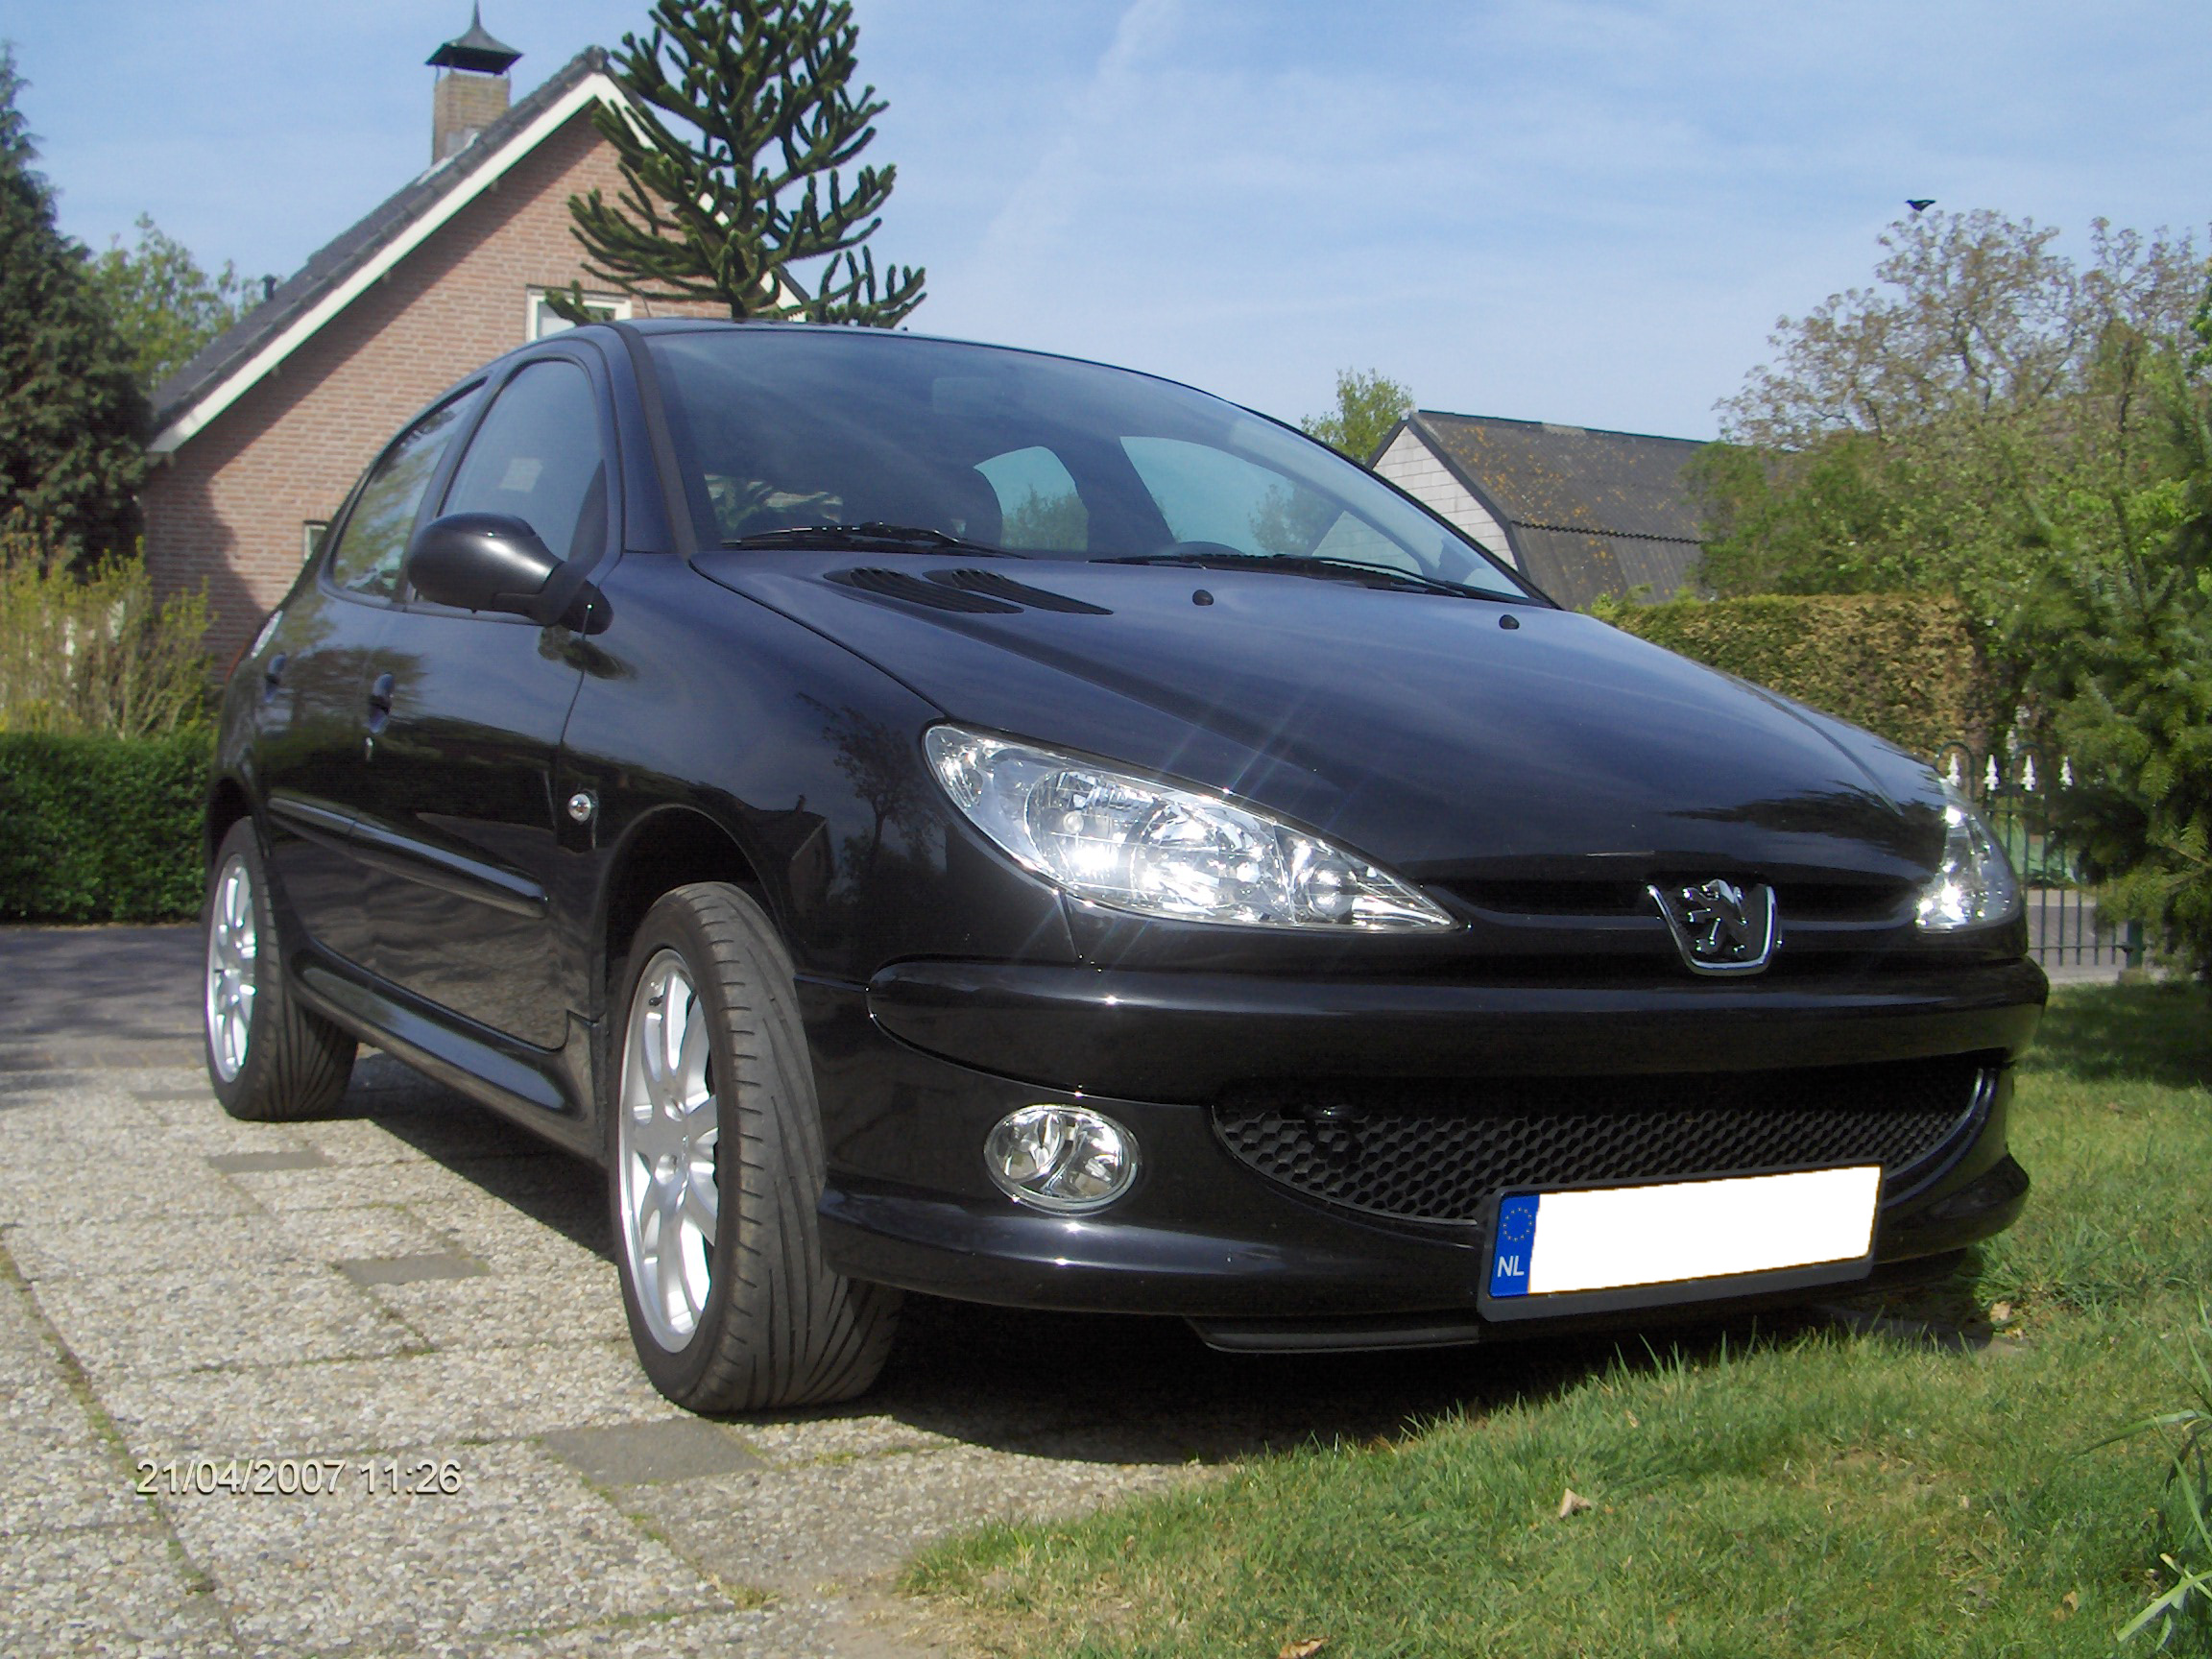 peugeot 206 review and pics new fastest cars. Black Bedroom Furniture Sets. Home Design Ideas